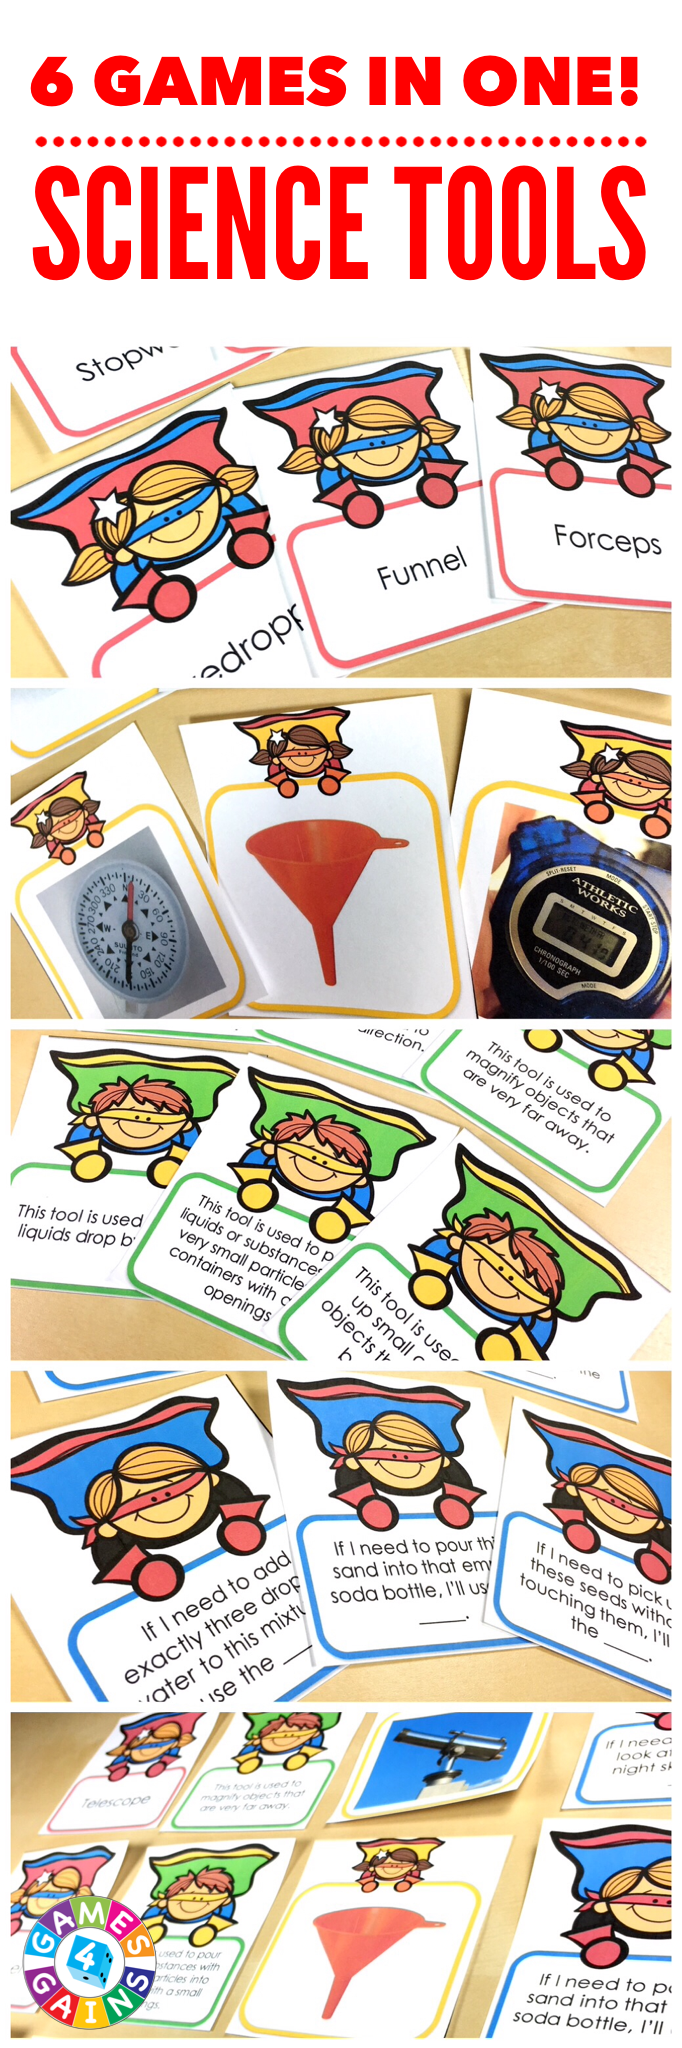 Science Tools 'Superhero Draw' Game brings you 6 wildly fun science tools games in one! Students will have a blast playing these popular card games as they practice identifying various science tools and describing their purpose. These games work great as a pair/group activity, or for use in science centers.